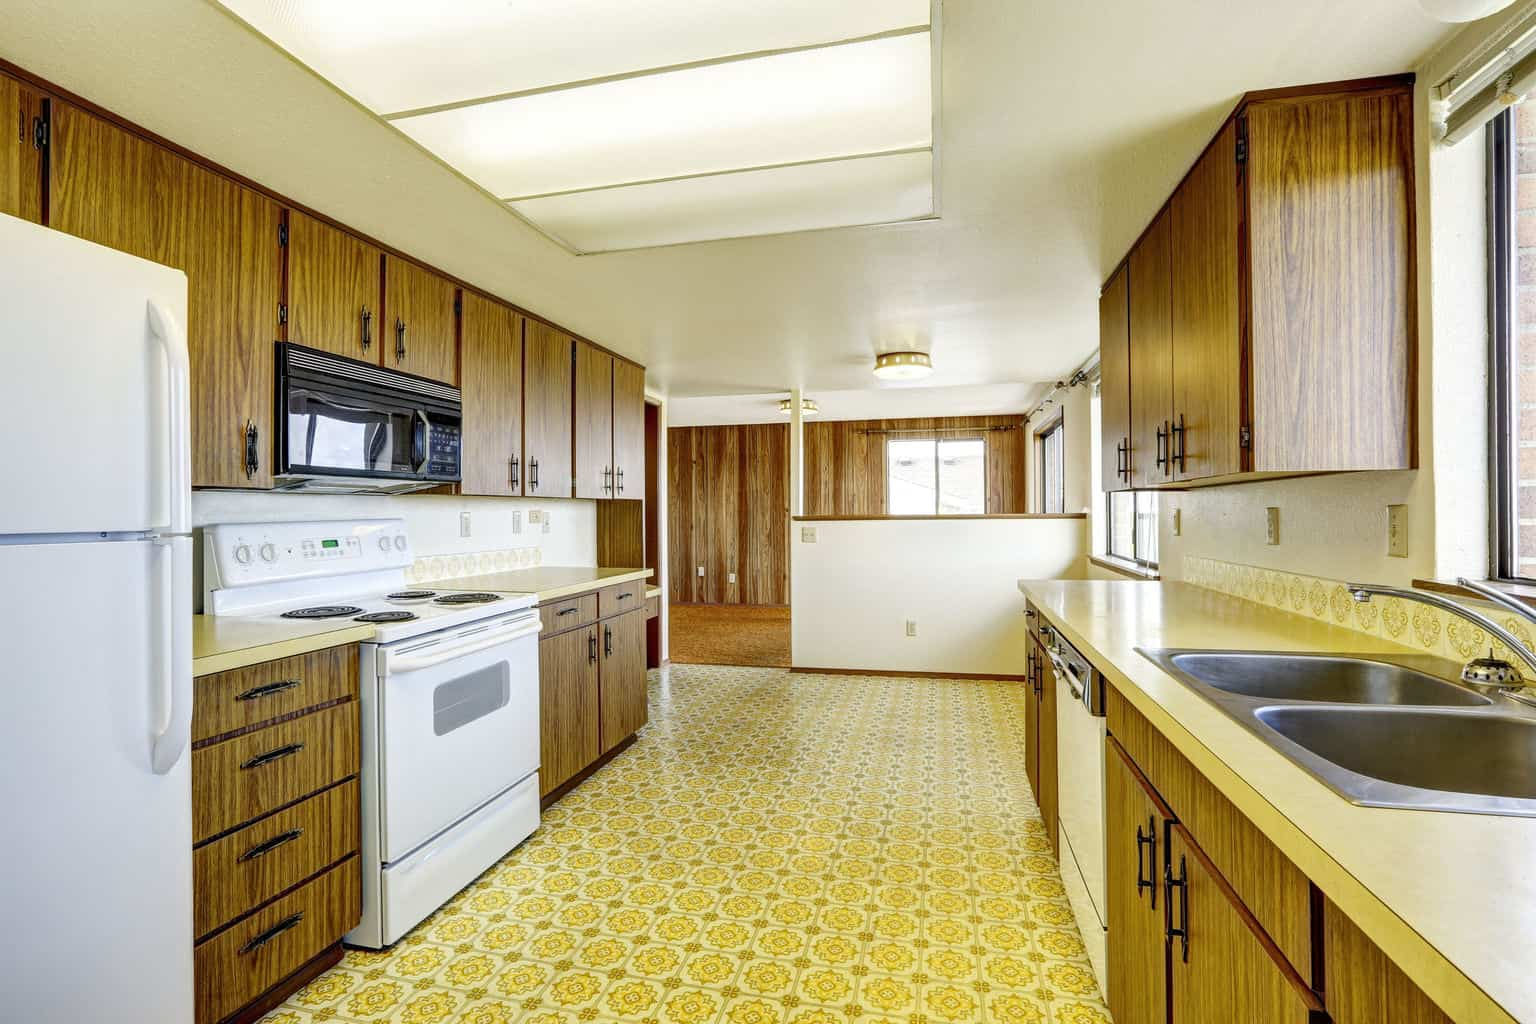 22 Kitchen Flooring Options and Ideas Pros  Cons